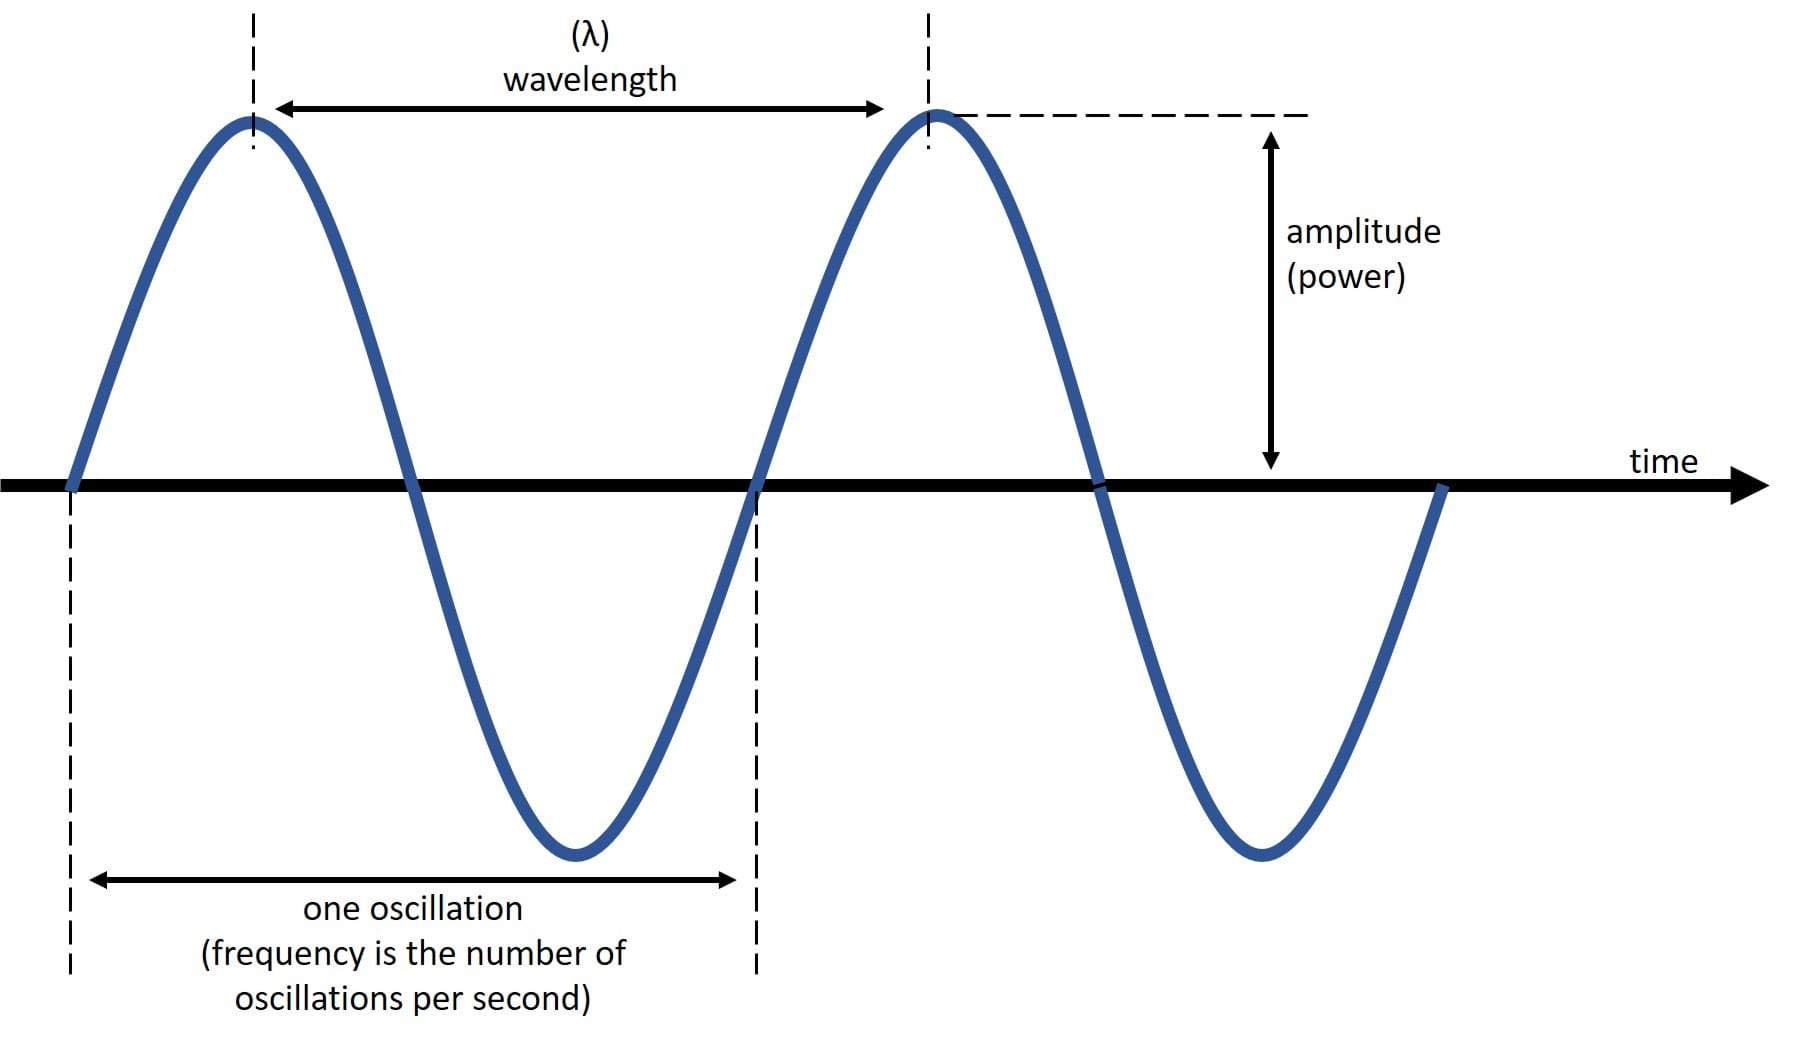 hight resolution of Ultrasonic Devices at the Speed of Sound! - Lesson - TeachEngineering